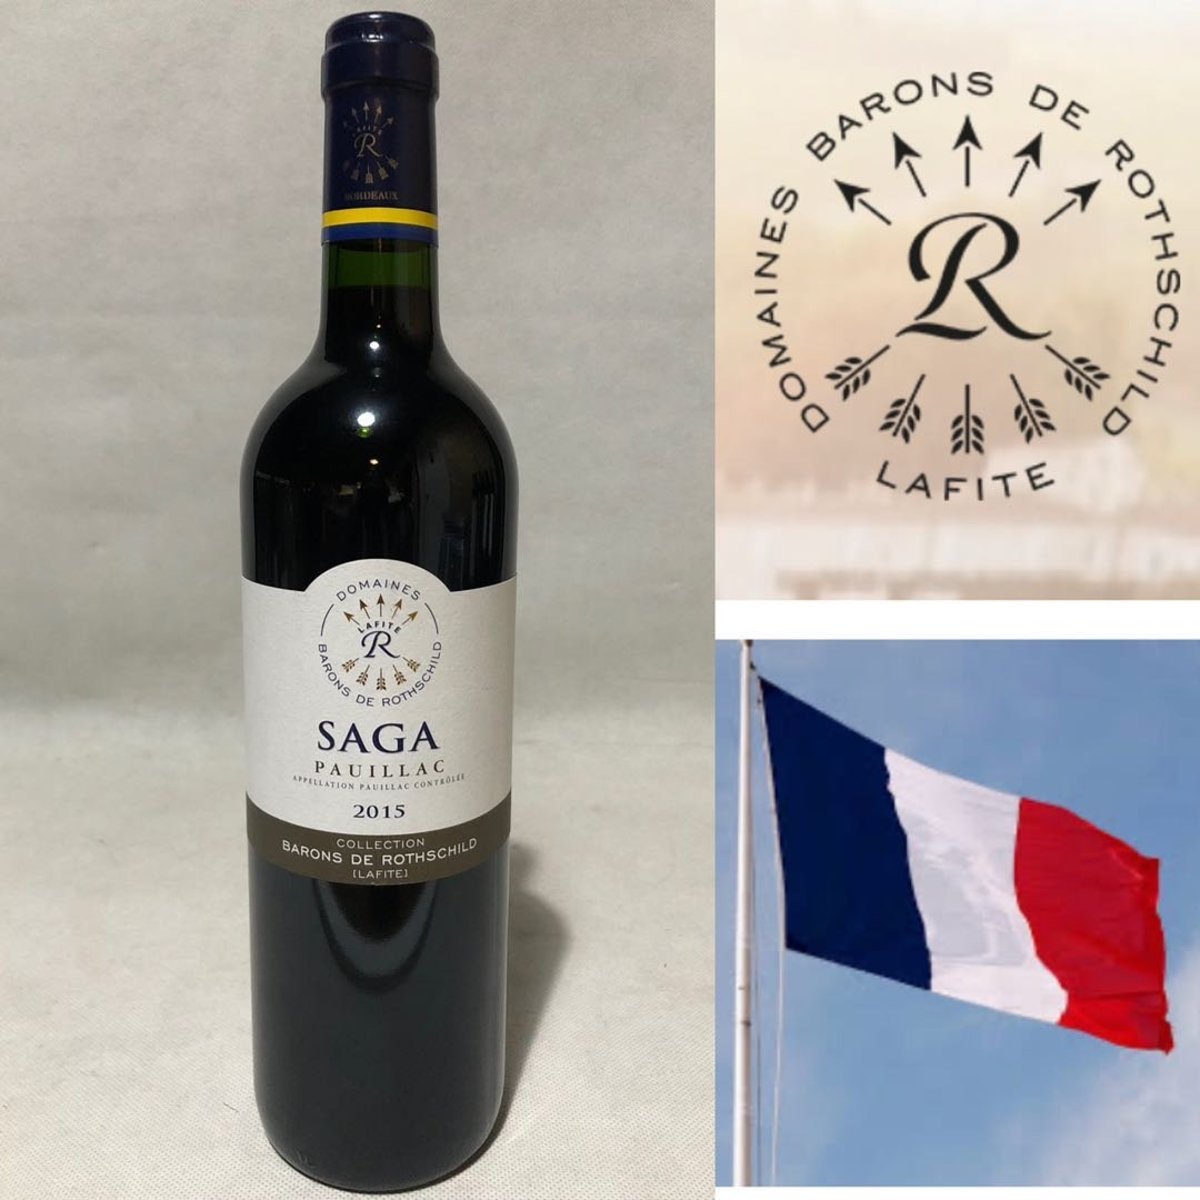 Domaines Barons de Rothschild Lafite Collection Saga Pauillac, France 2015